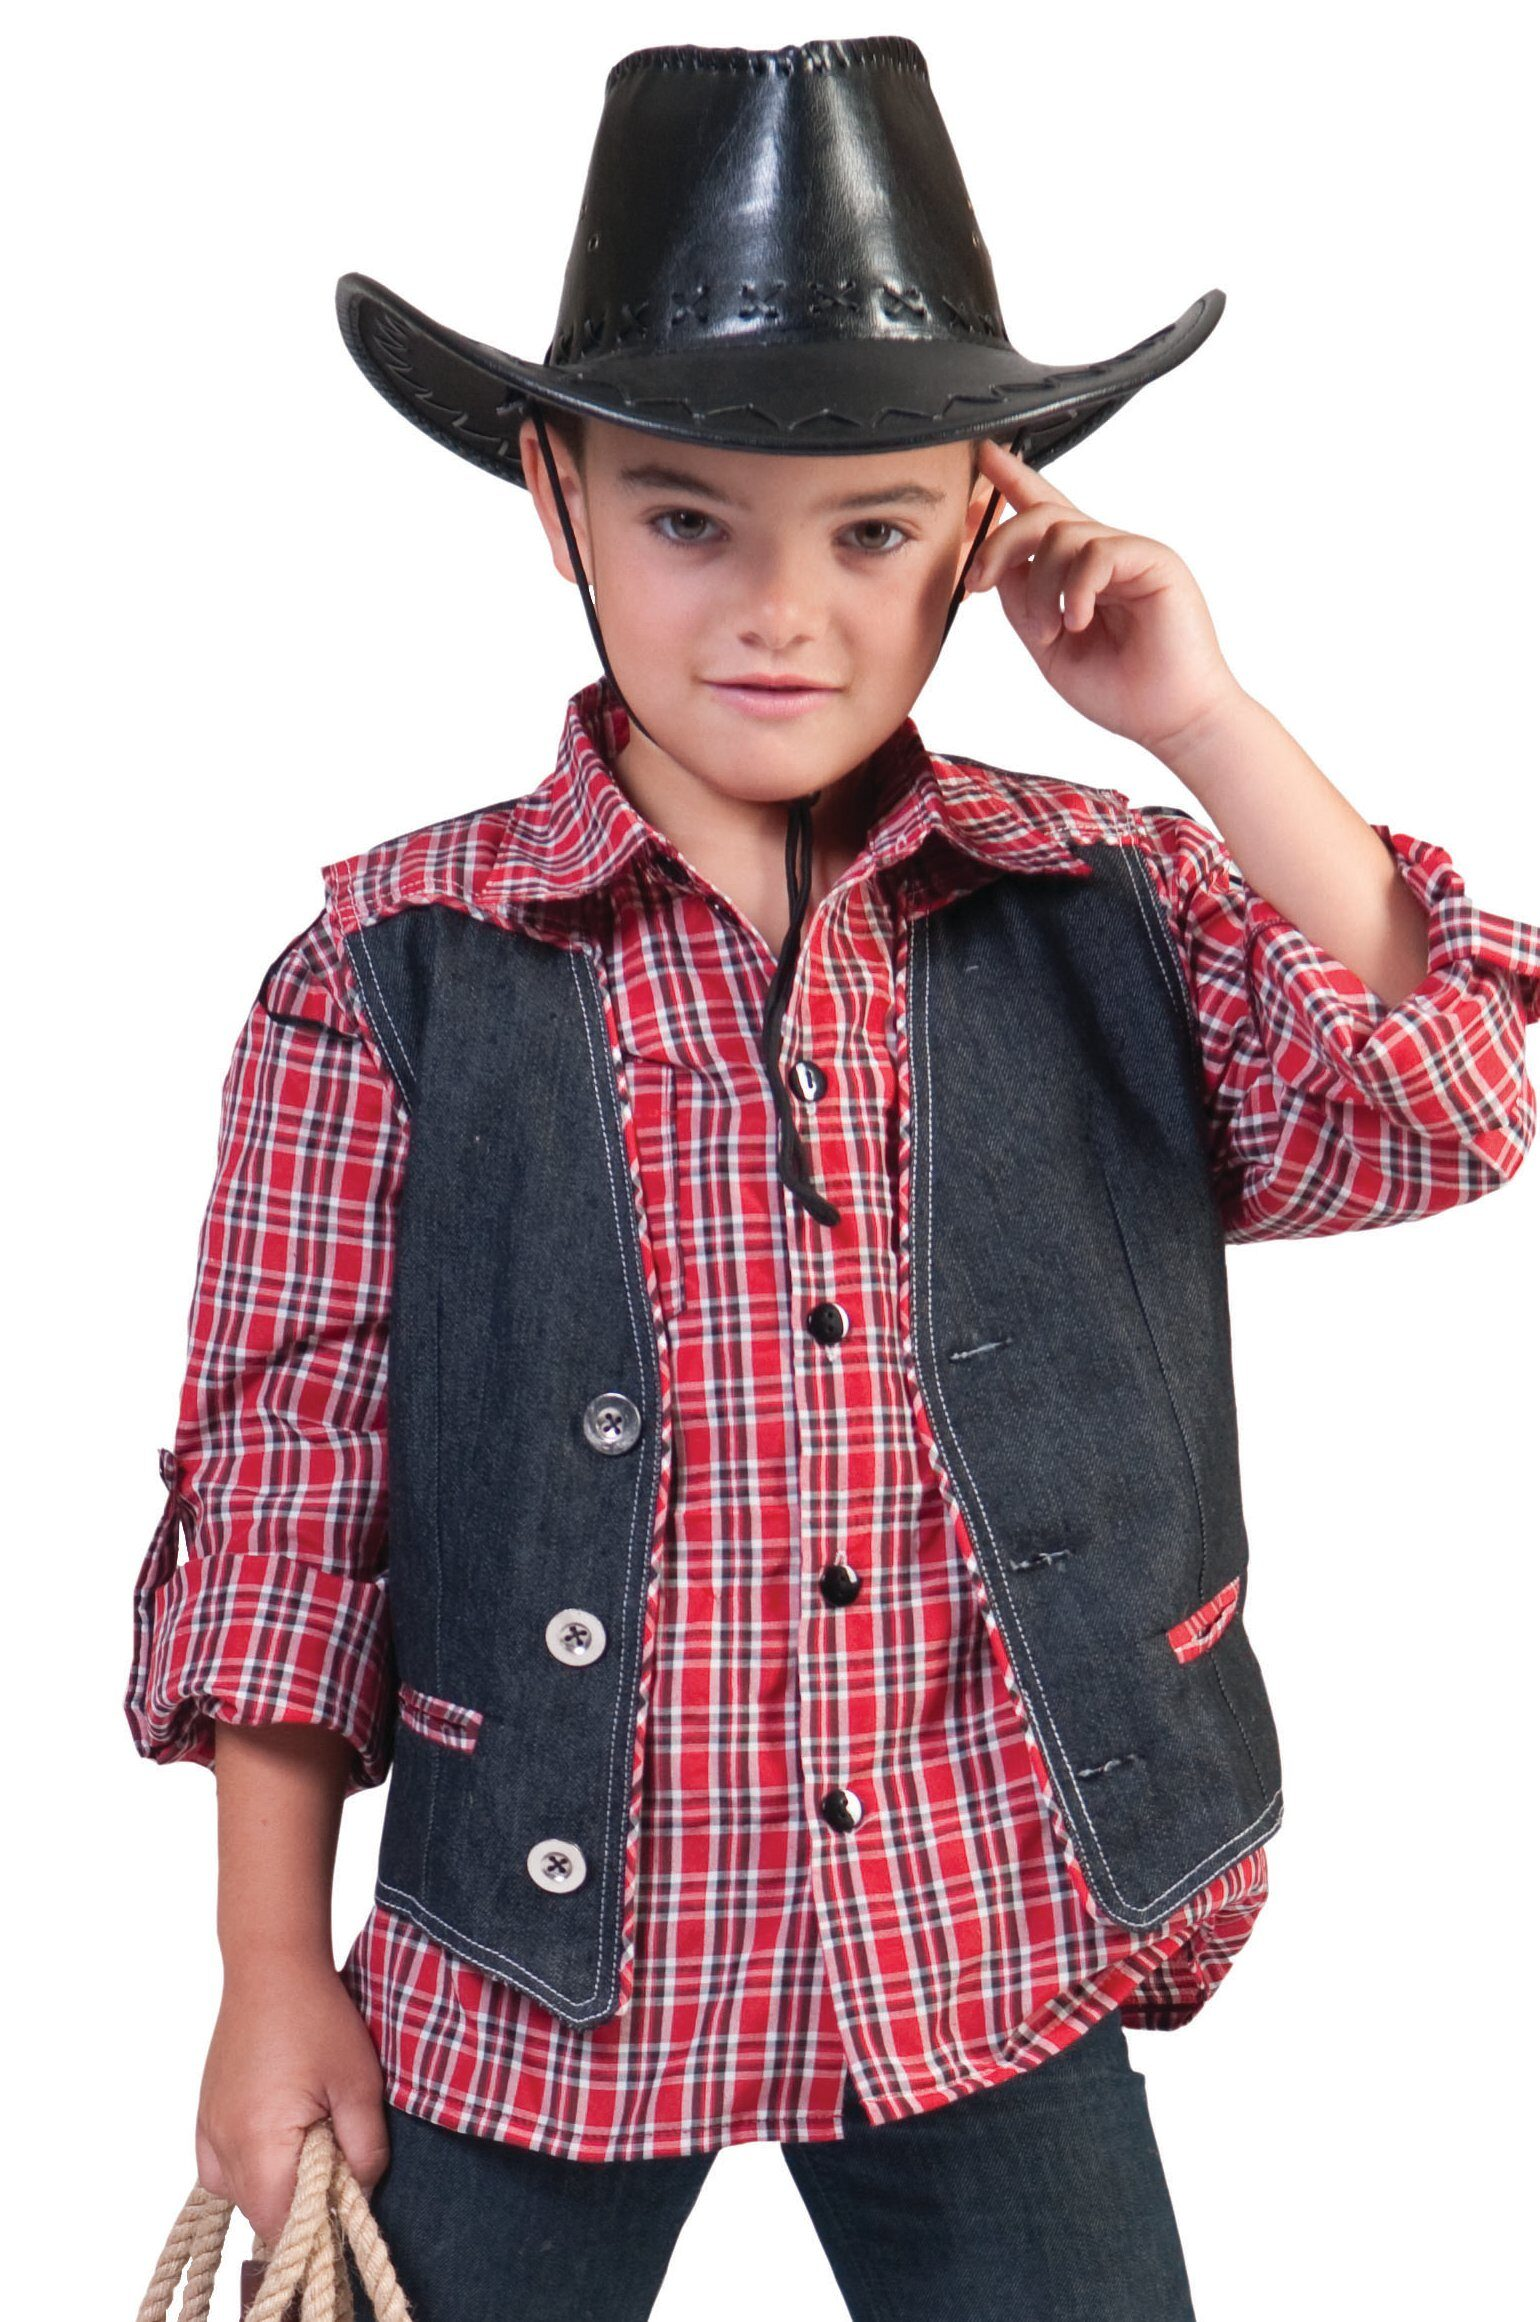 Boys Cowboy Shirt Kids Costume  sc 1 st  Mr. Costumes & Boys Cowboy Shirt Kids Costume - Mr. Costumes